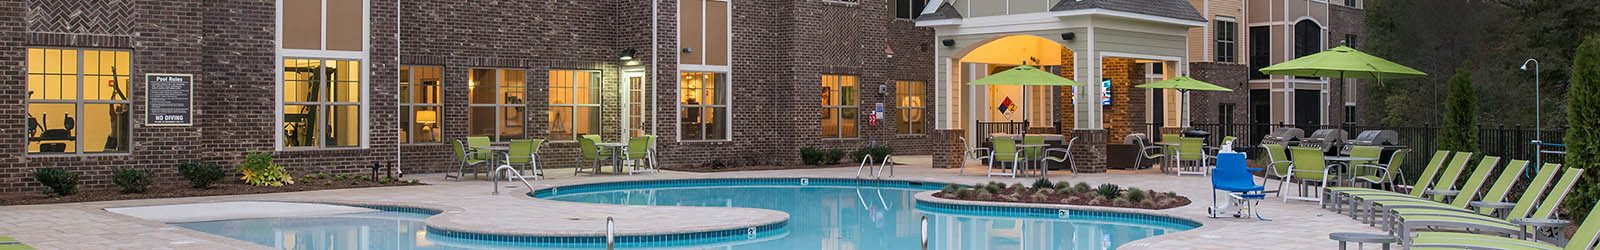 Apply today to live in our apartments in Huntersville